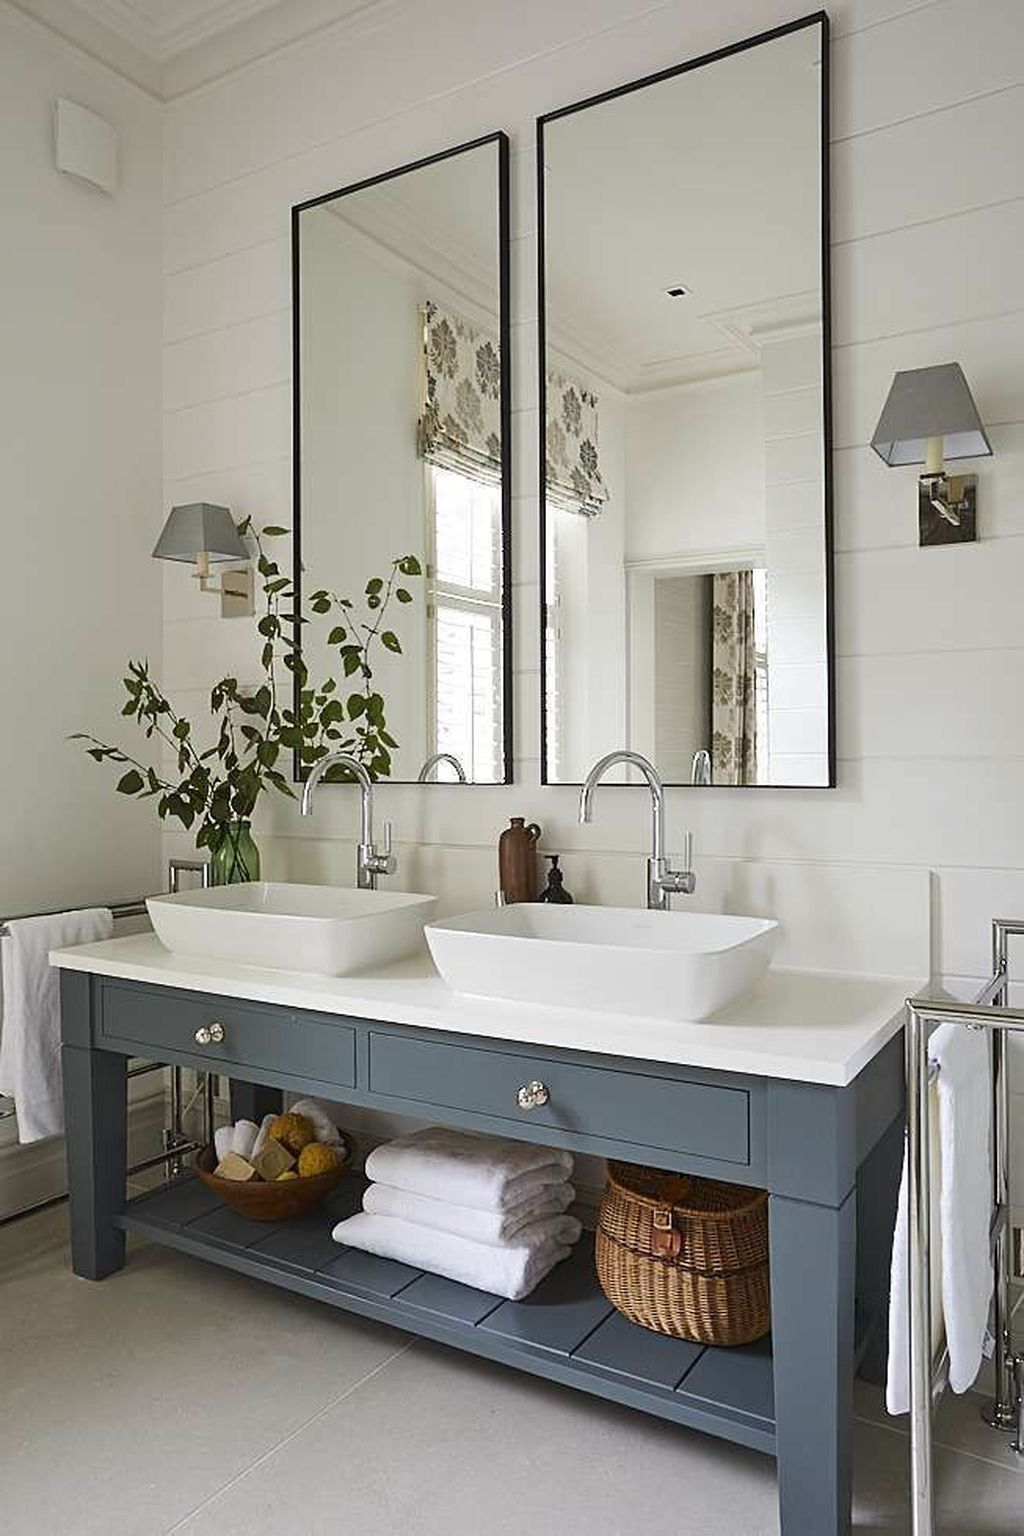 Salle De Bain Avec Nevada ~ nice 99 modern farmhouse bathroom vanity design ideas salle de